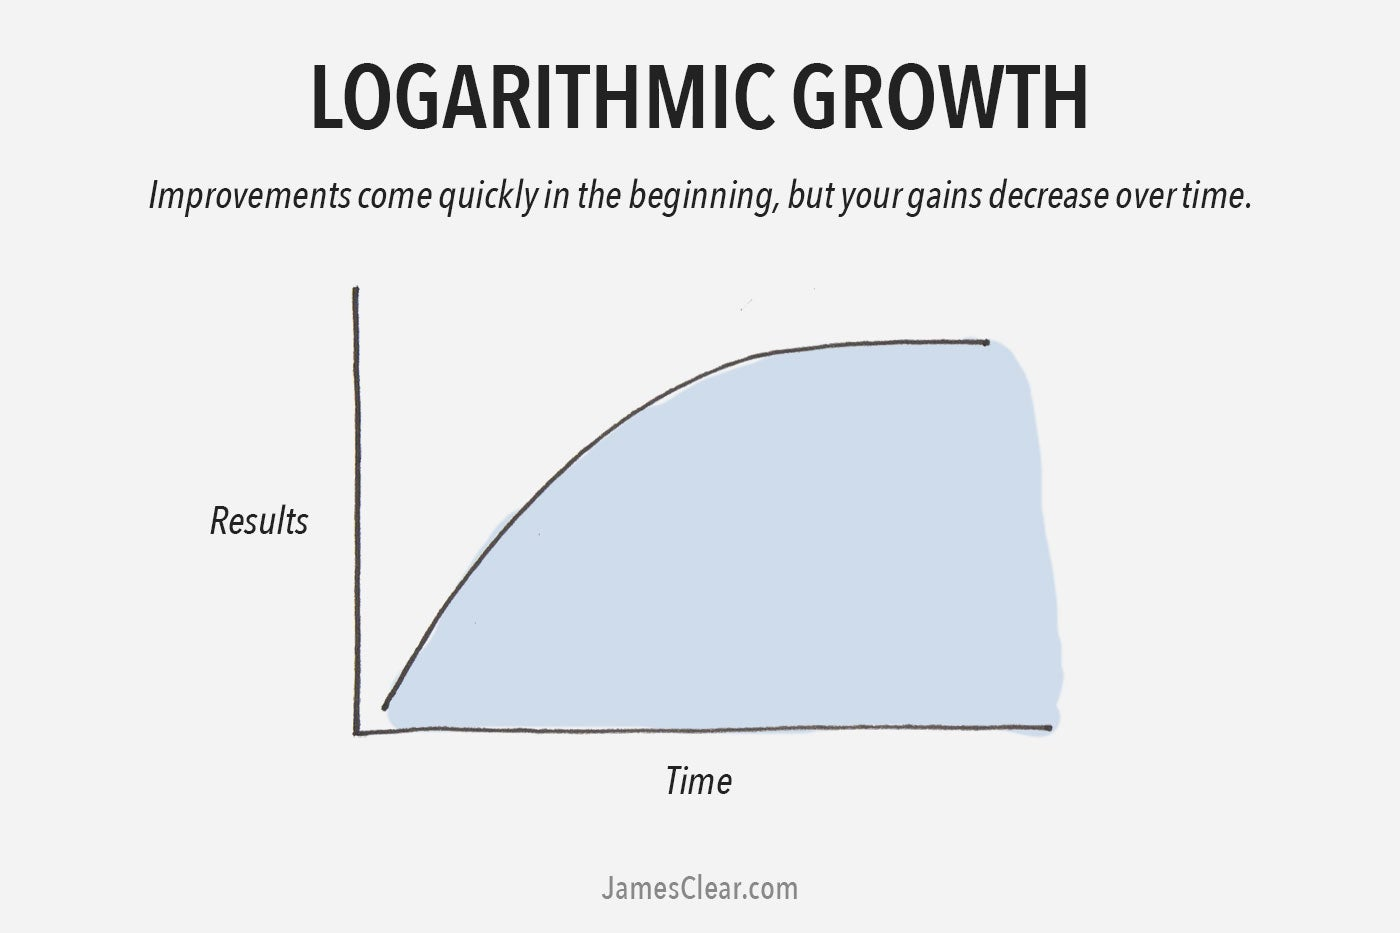 Logarithmic growth curve